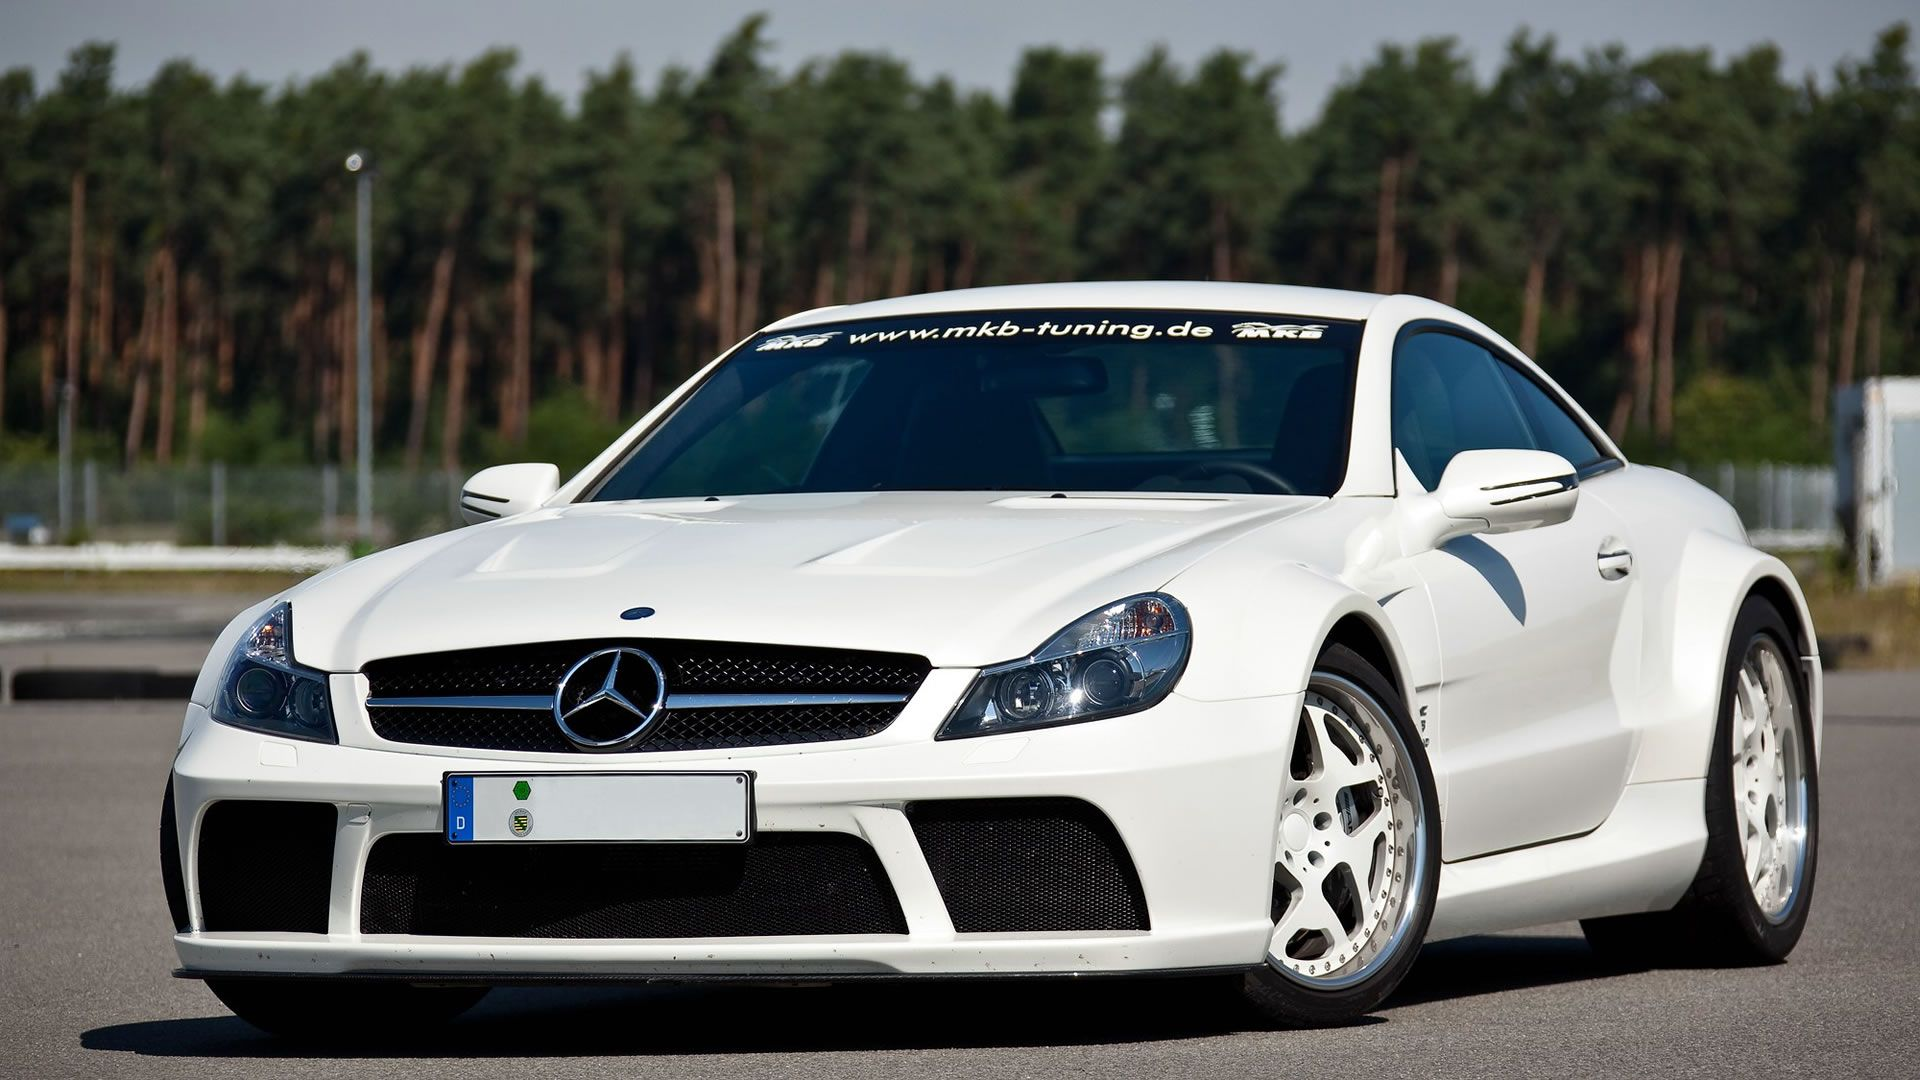 Automotive area 2011 mercedes benz sl r230 - German Tuning Company Mkb Offers A Fresh New Performance Package For The German Automobile Manufacturer Mercedes Benz S Sl 65 Black Series